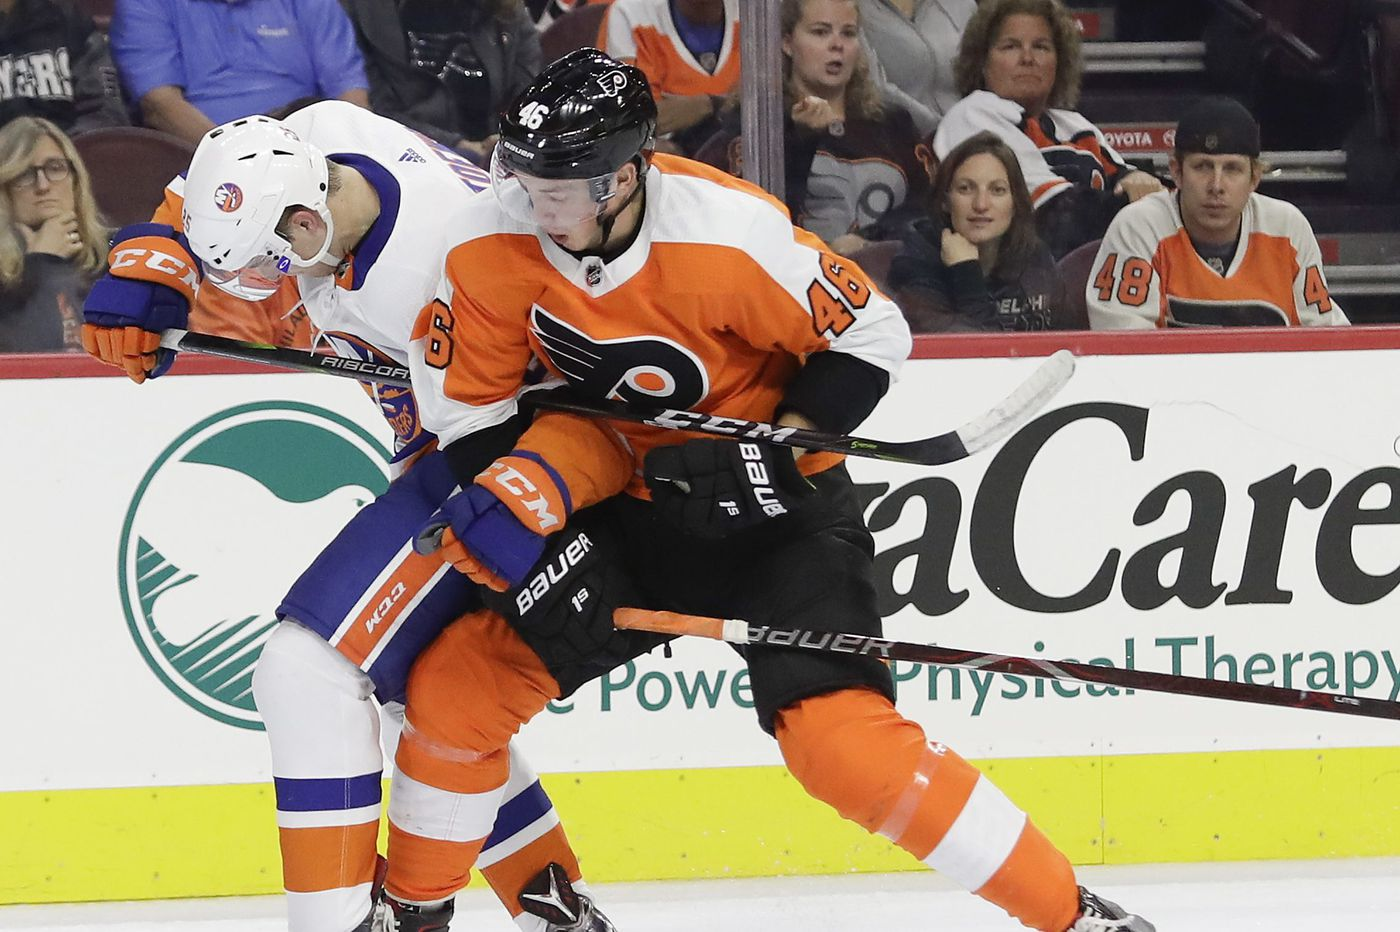 Flyers position preview: Sean Couturier, Nolan Patrick head deep, competitive group of centers